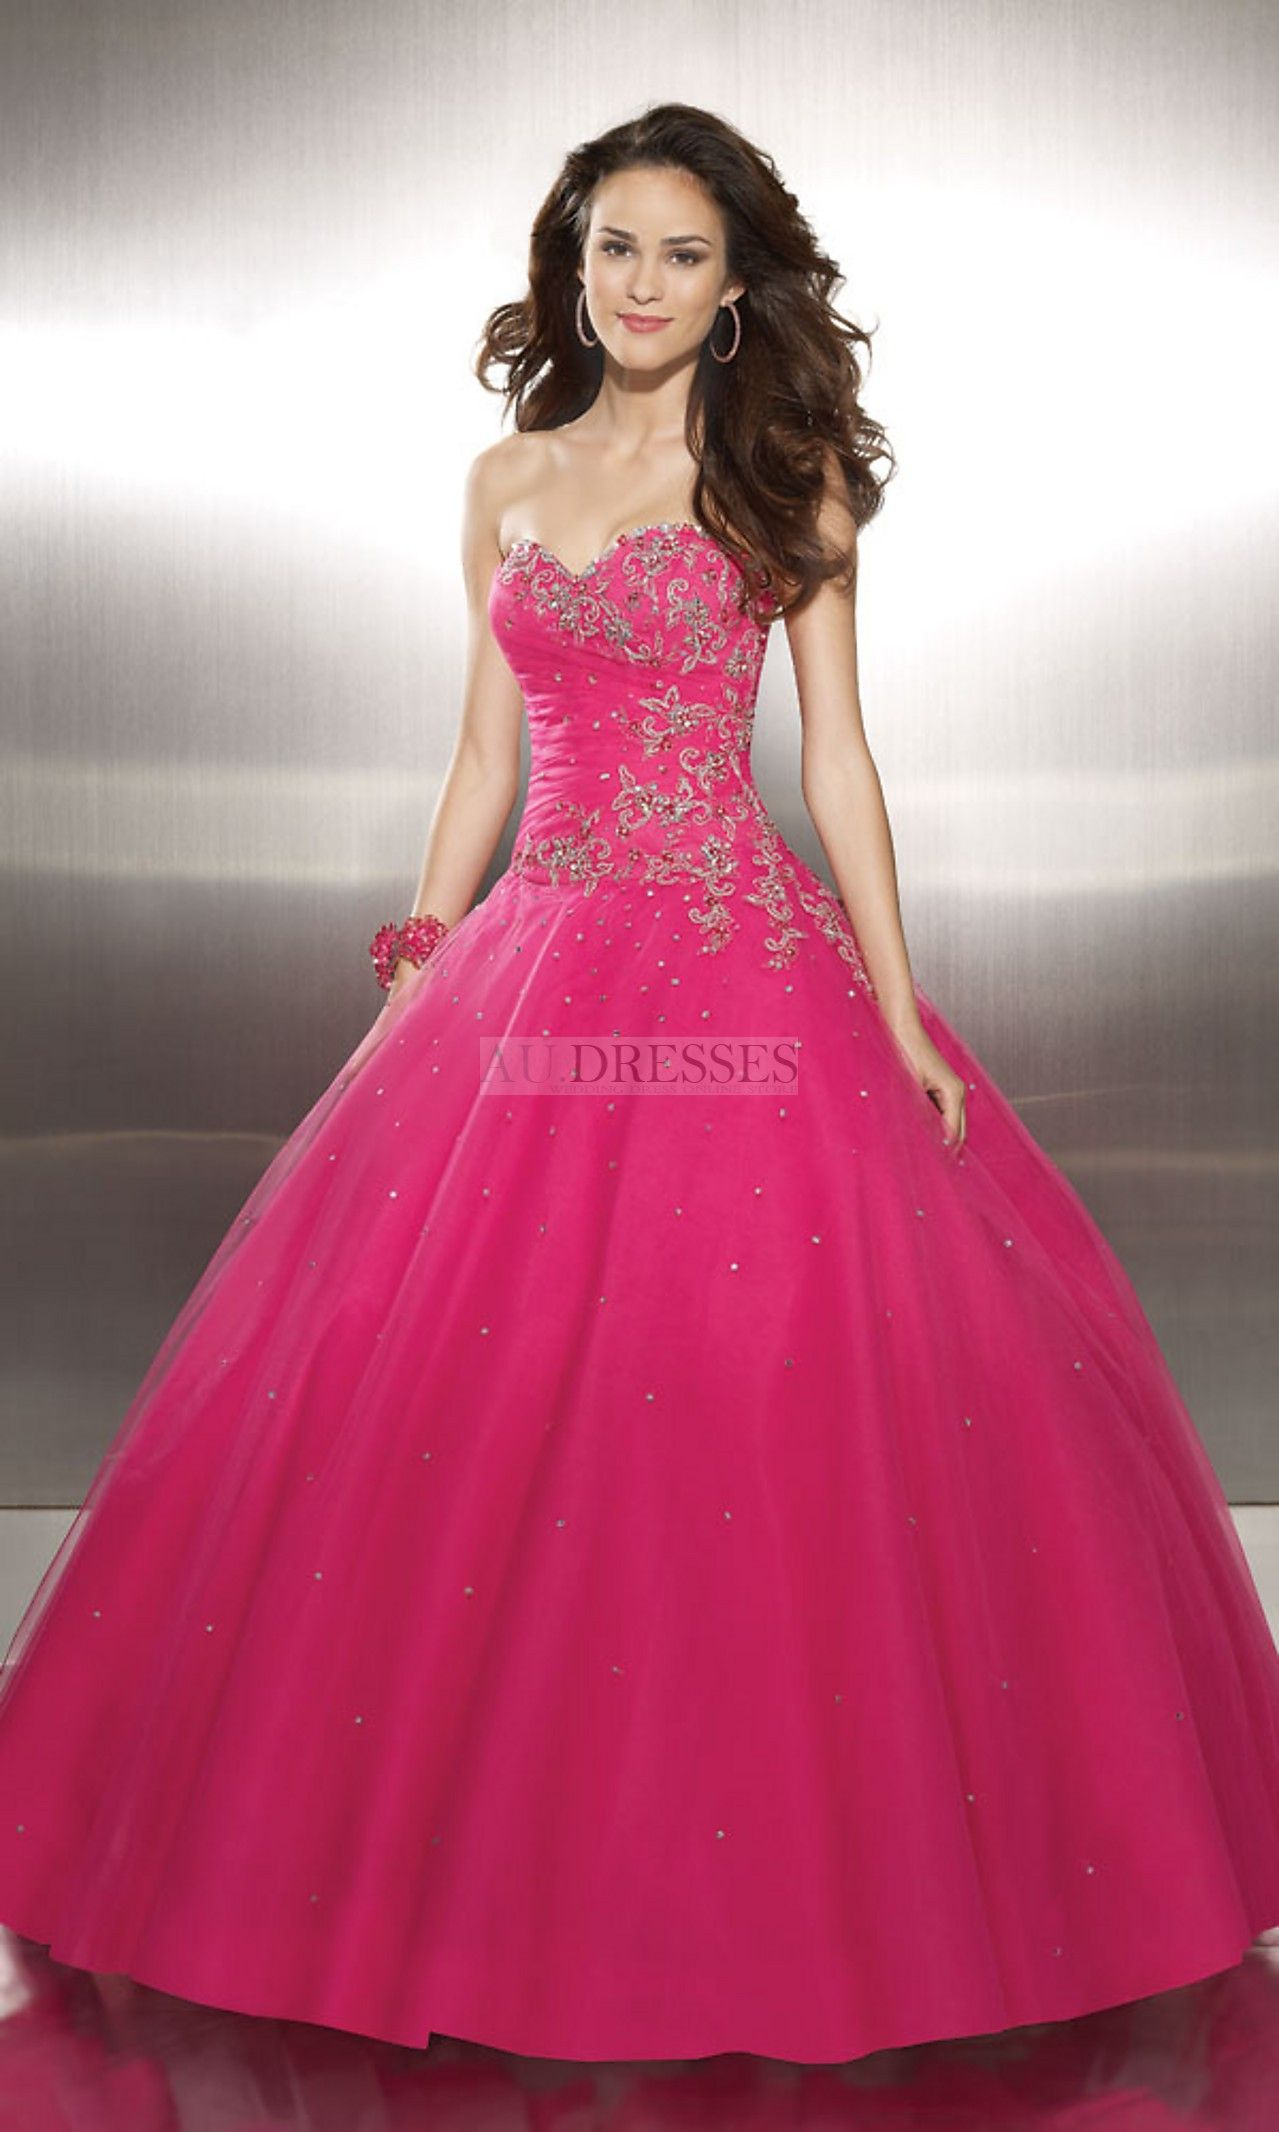 Princess Tulle With Embroidery And Beading Gown - Prom Dresses ...